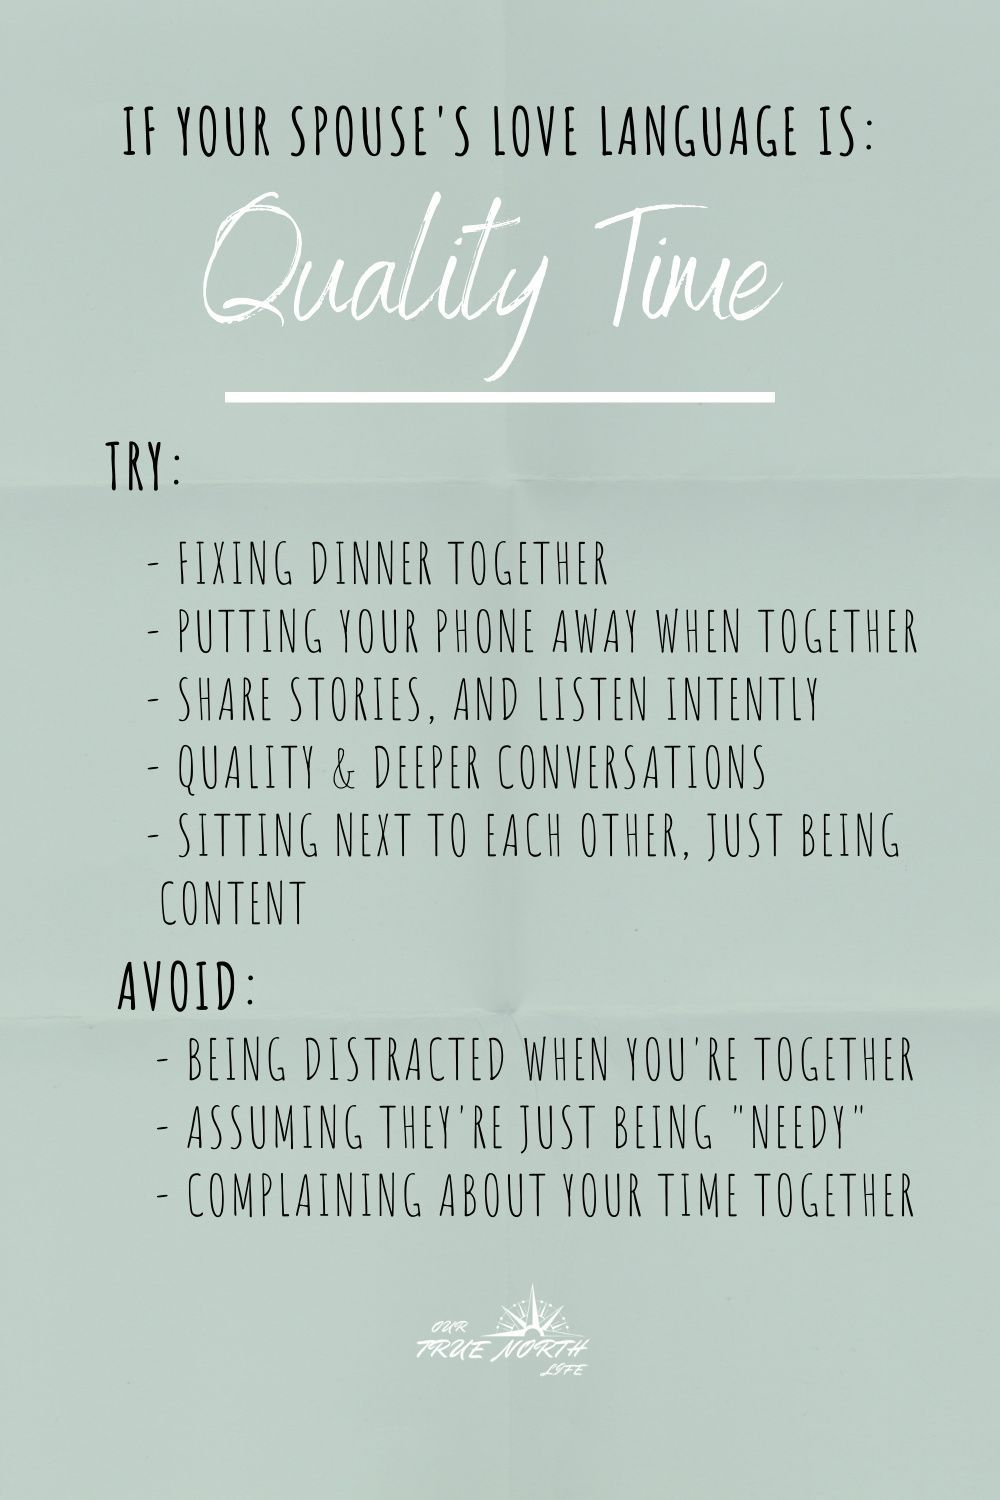 Ideas for love language of quality time. Tips on what to do and what NOT to do. #ilovemyspouse #lovelanguagequalitytime